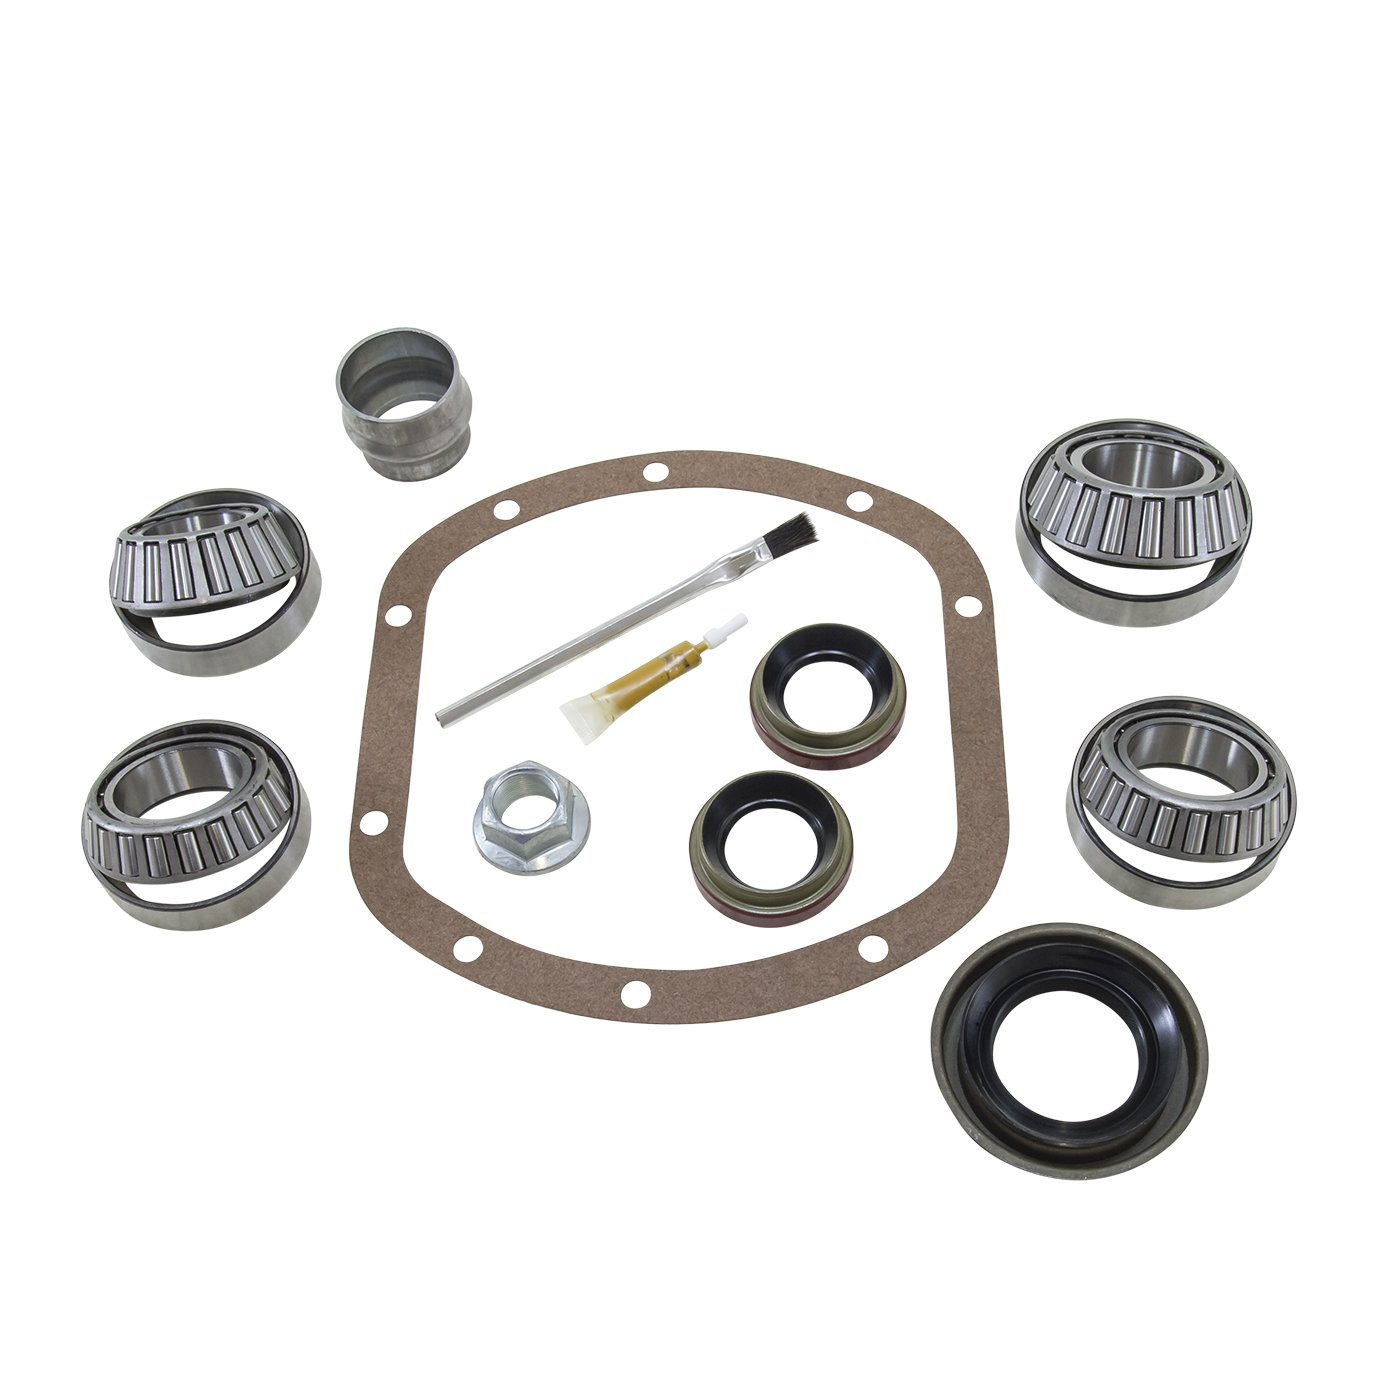 USA Standard Gear (ZBKD30-JK) Bearing Kit for Jeep JK Dana 30 Front Differential by USA Standard Gear